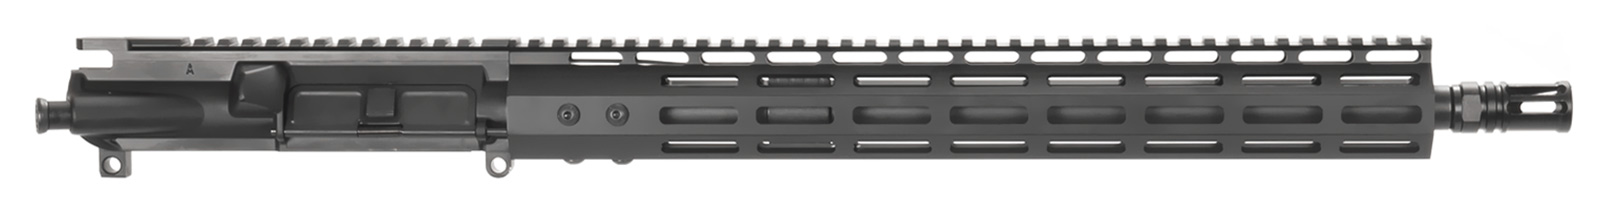 ar-15-upper-assembly-16-300-aac-1-8-15-cbc-m-lok-ar-15-handguard-rail-compensator-california-compliant